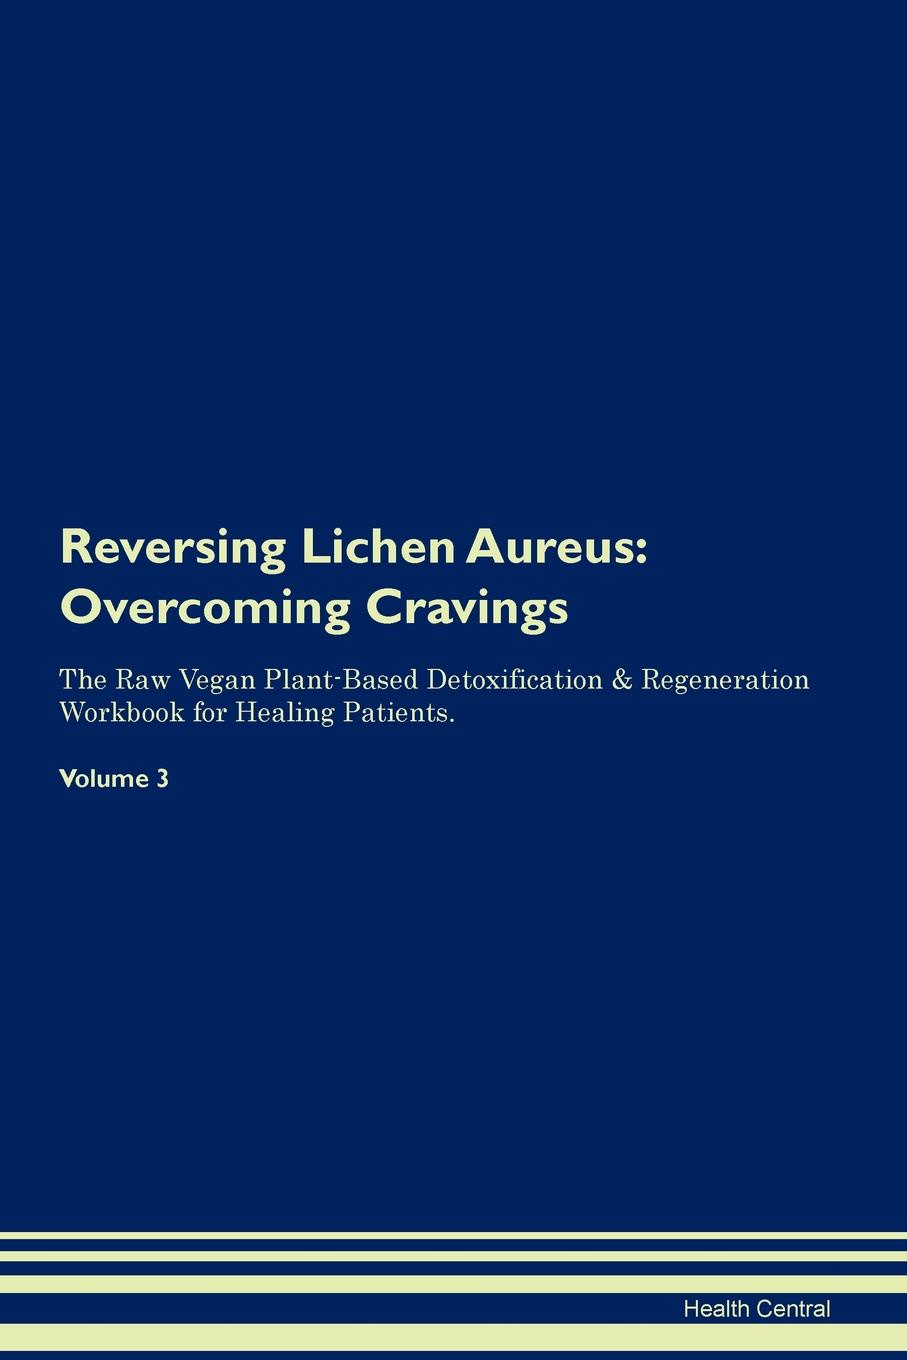 Health Central Reversing Lichen Aureus. Overcoming Cravings The Raw Vegan Plant-Based Detoxification & Regeneration Workbook for Healing Patients. Volume 3 health central reversing lichen sclerosus overcoming cravings the raw vegan plant based detoxification regeneration workbook for healing patients volume 3